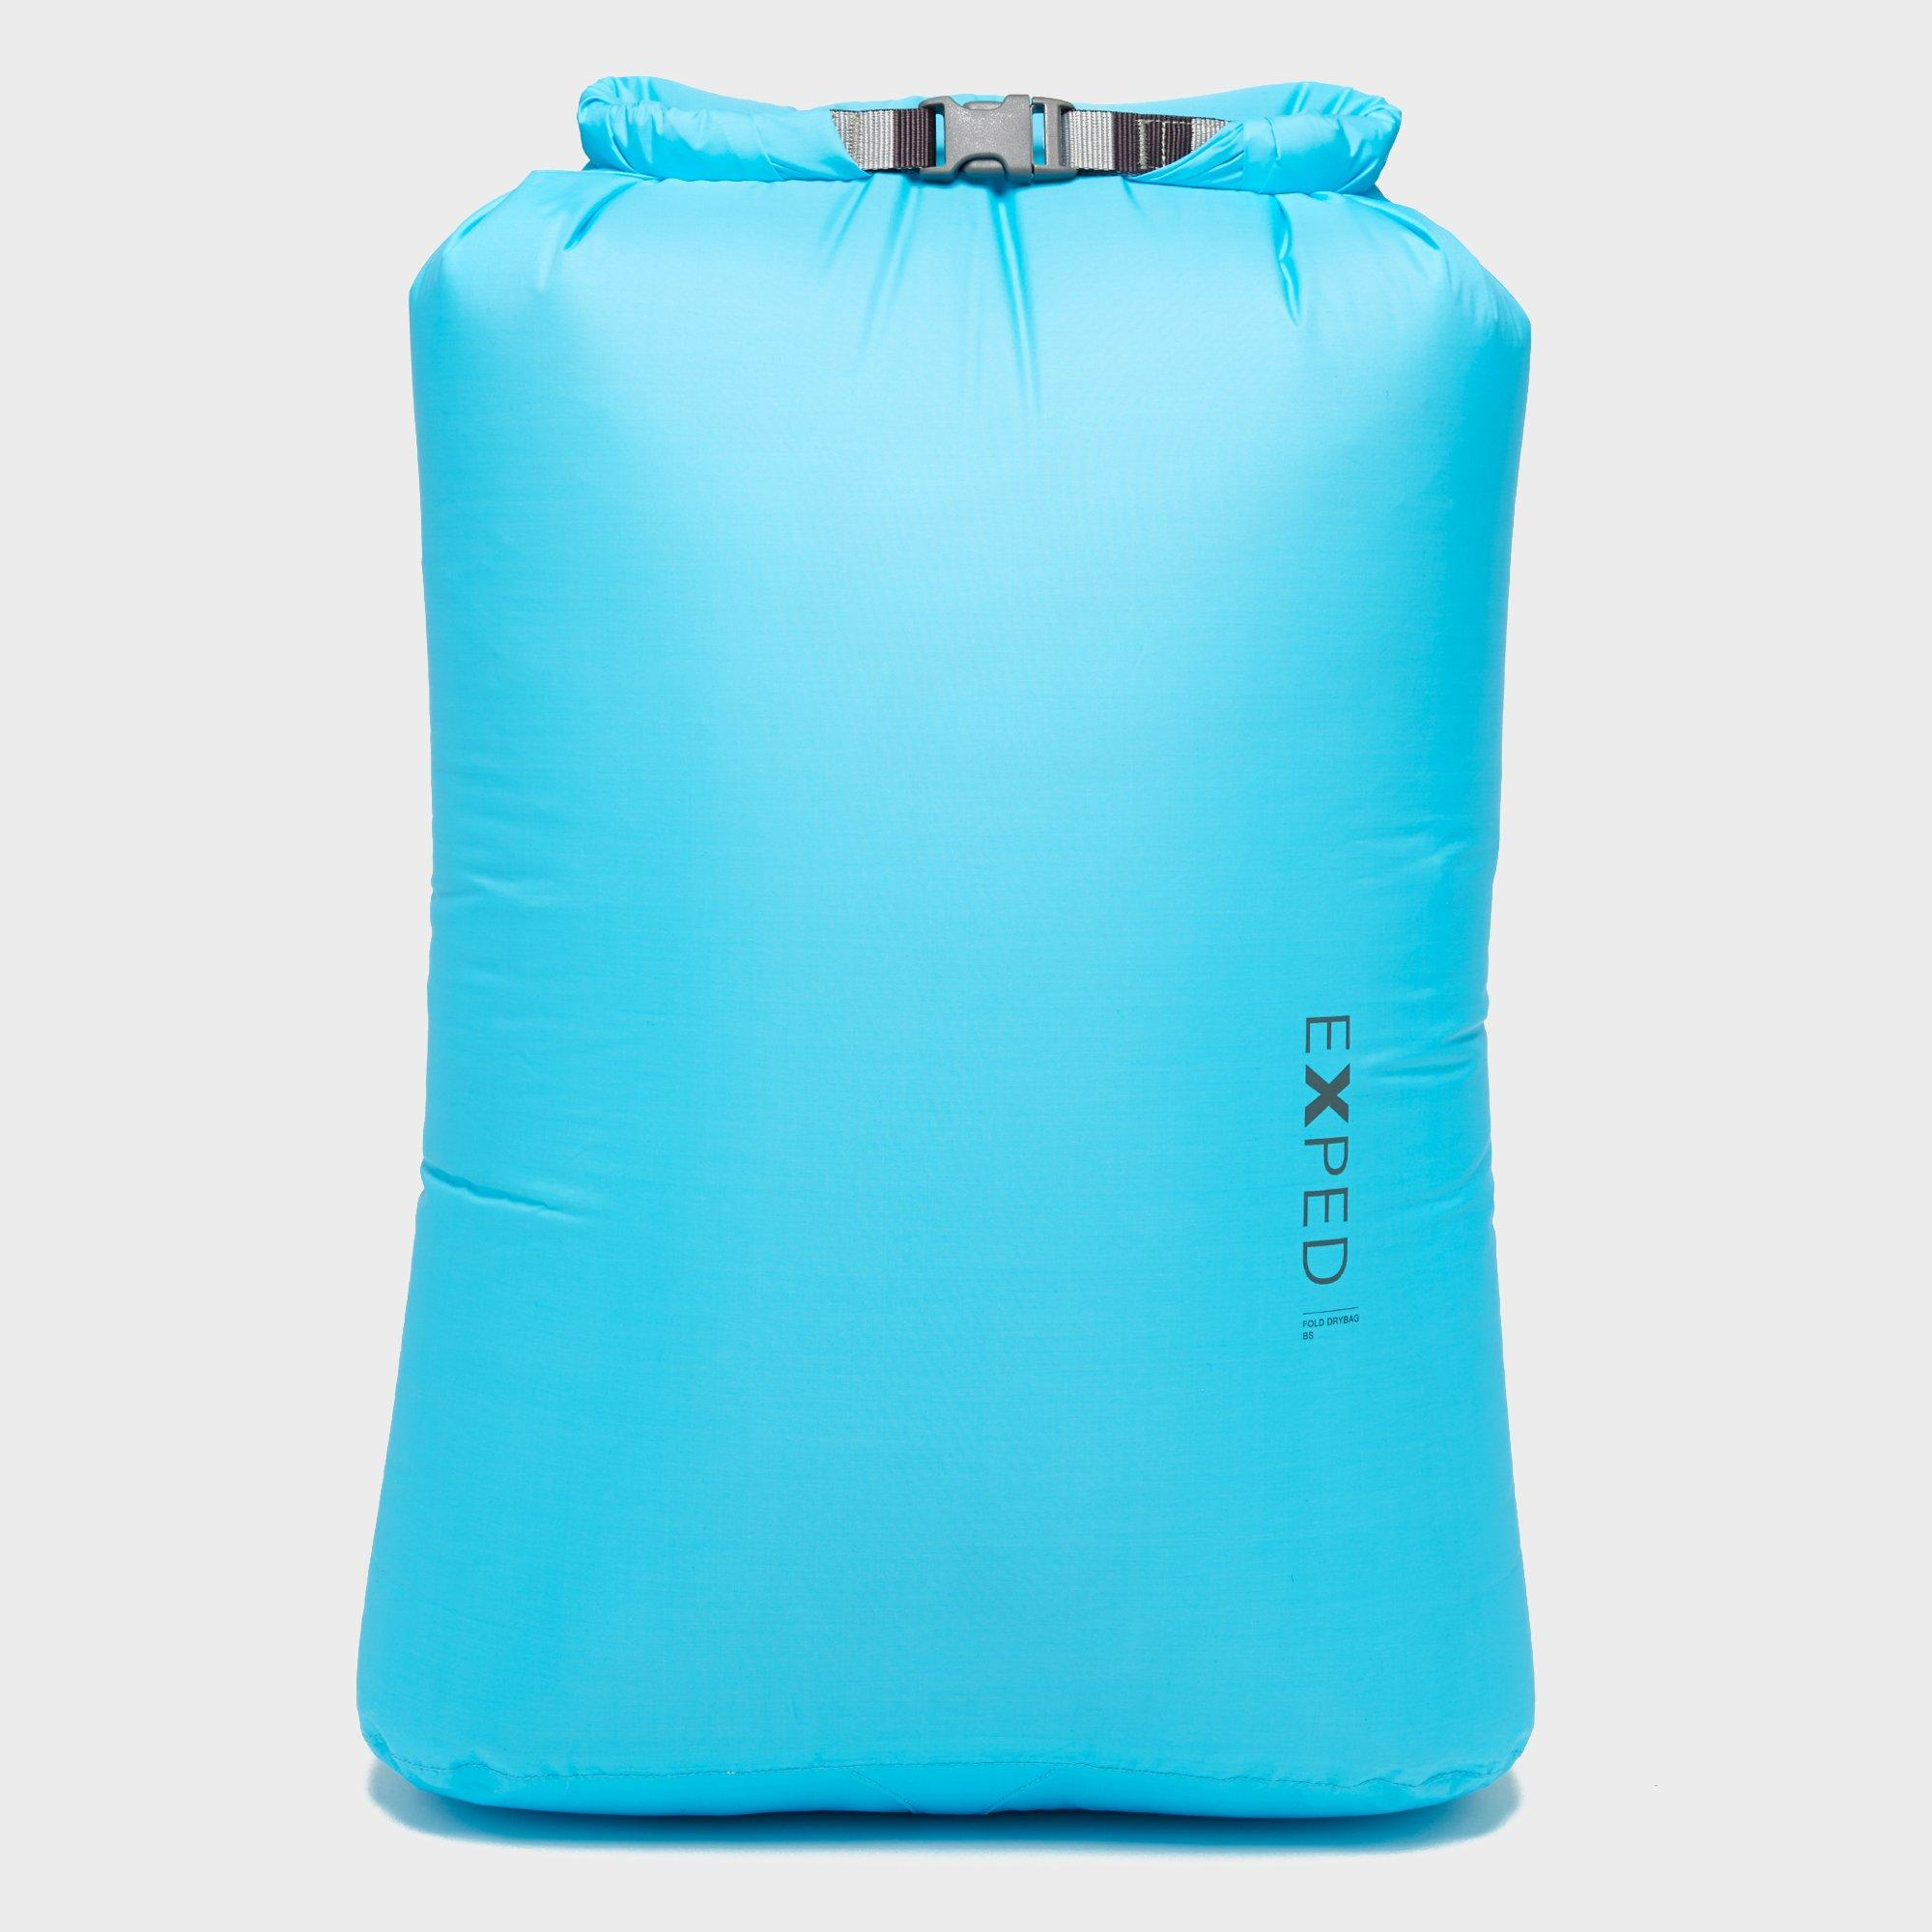 Exped Expedition 40L Dry Fold Bag - Blue, Blue